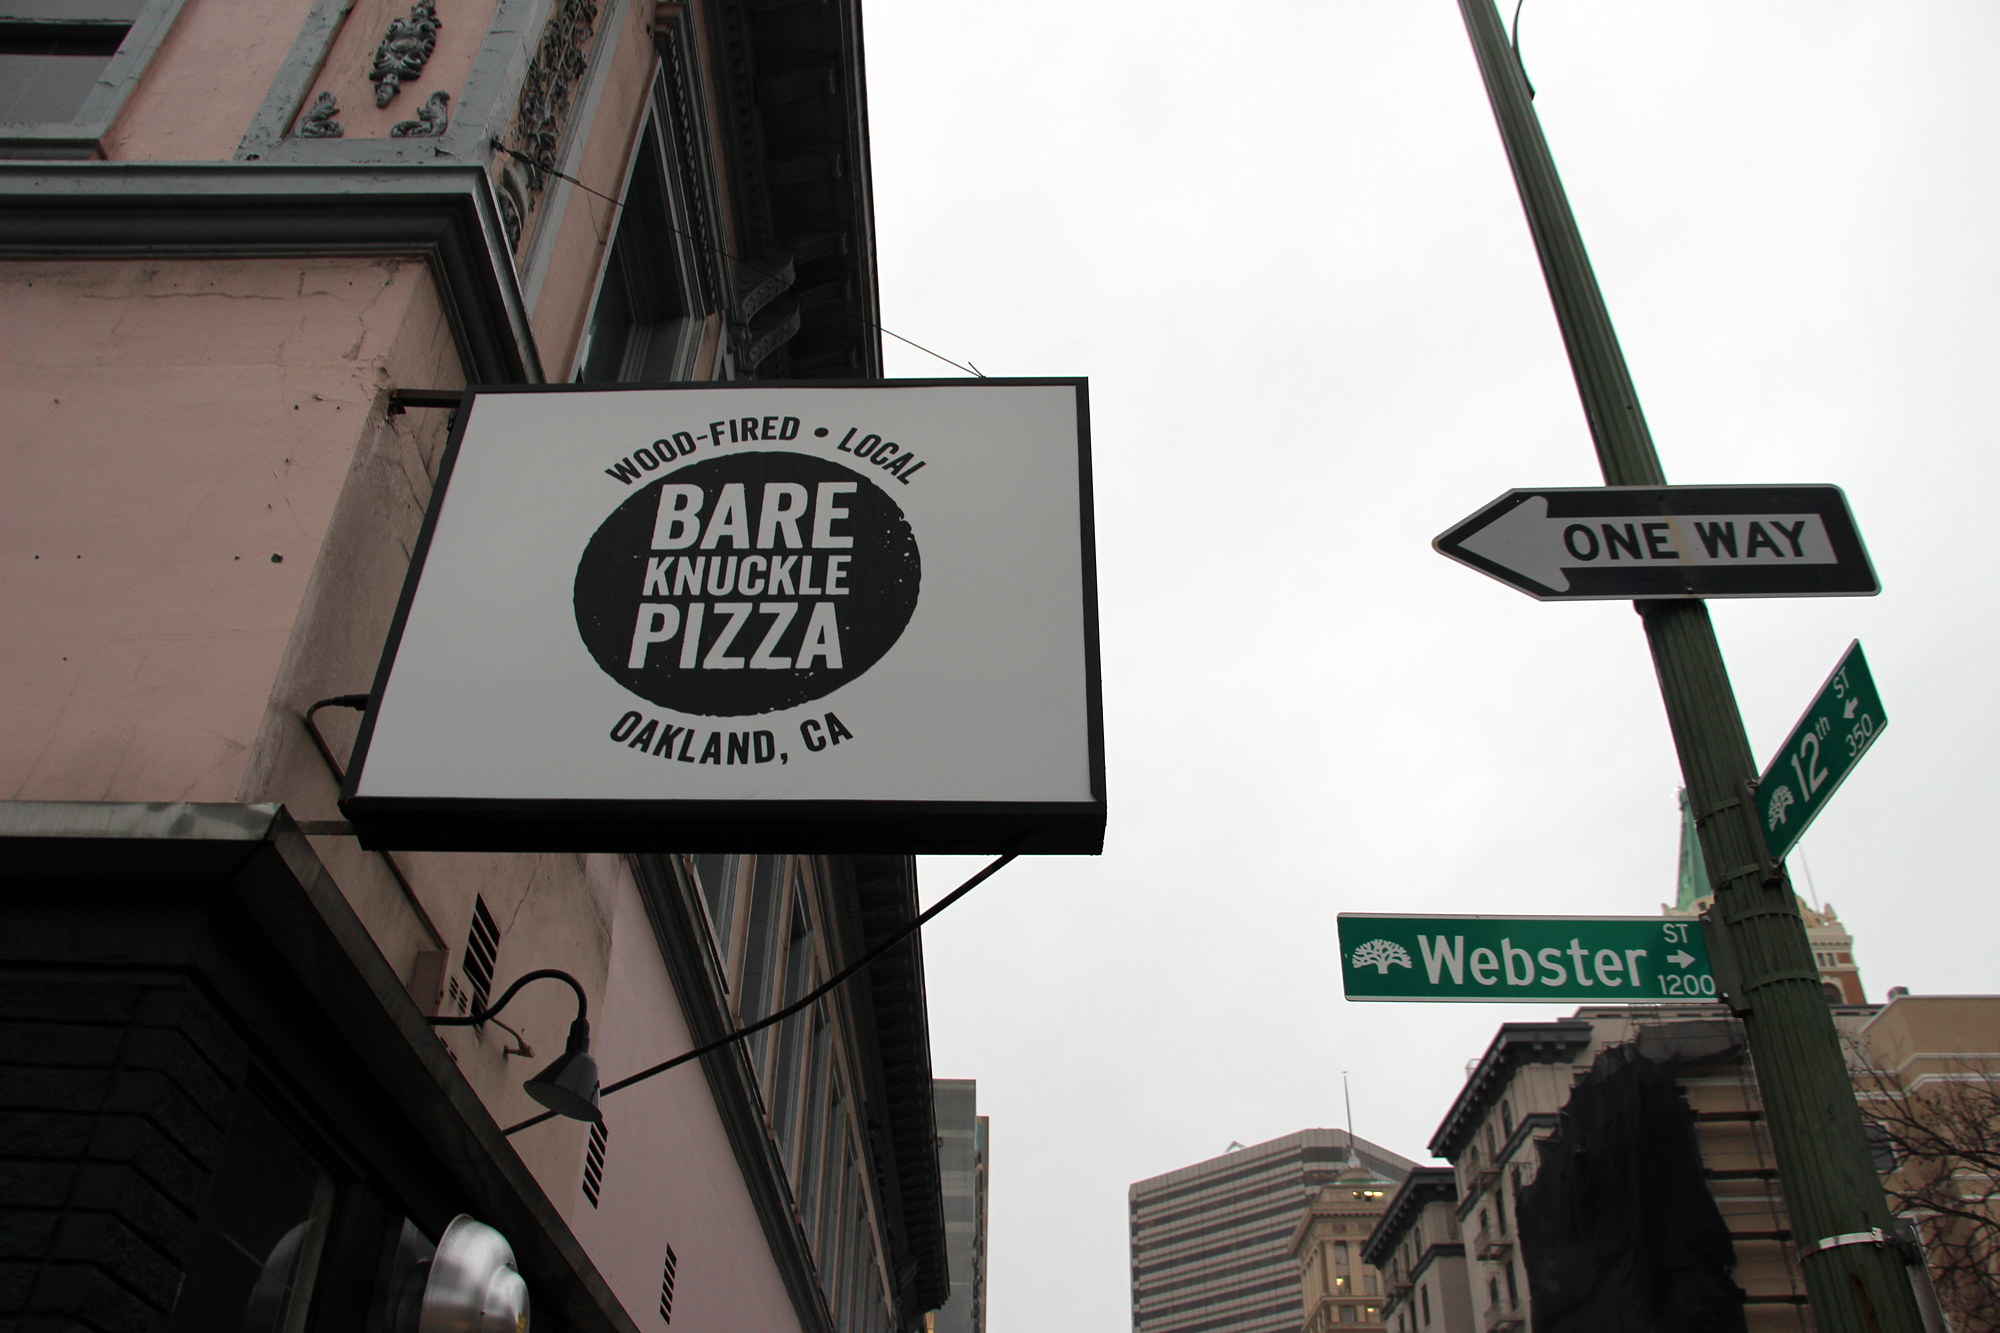 Bare Knuckle Pizza signage.